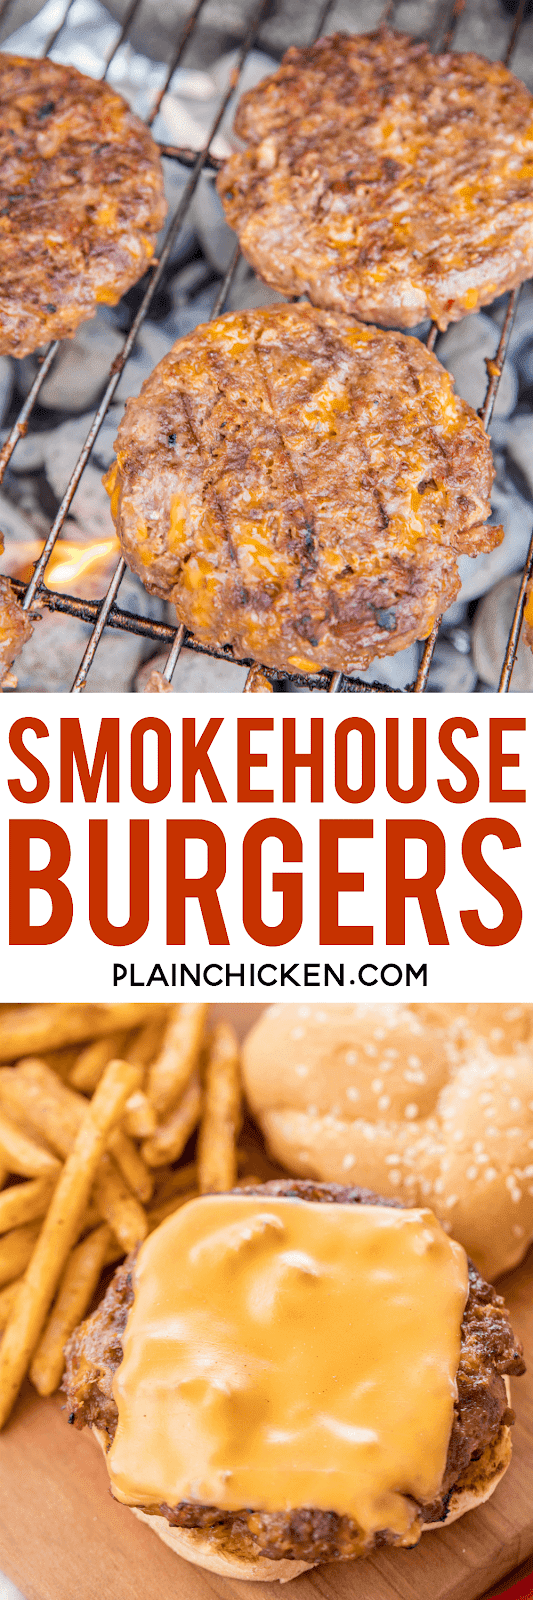 Smokehouse Burgers - THE BEST burgers EVER!! Ground beef and sausage loaded with cheddar cheese, bacon, ranch, bbq sauce and french fried onions. Perfection!!! Can make ahead of time and freeze for later. Made these for a cookout and everyone asked for the recipe! Our #1 burger recipe!! You need to make this ASAP! #grilling #burgers #beef